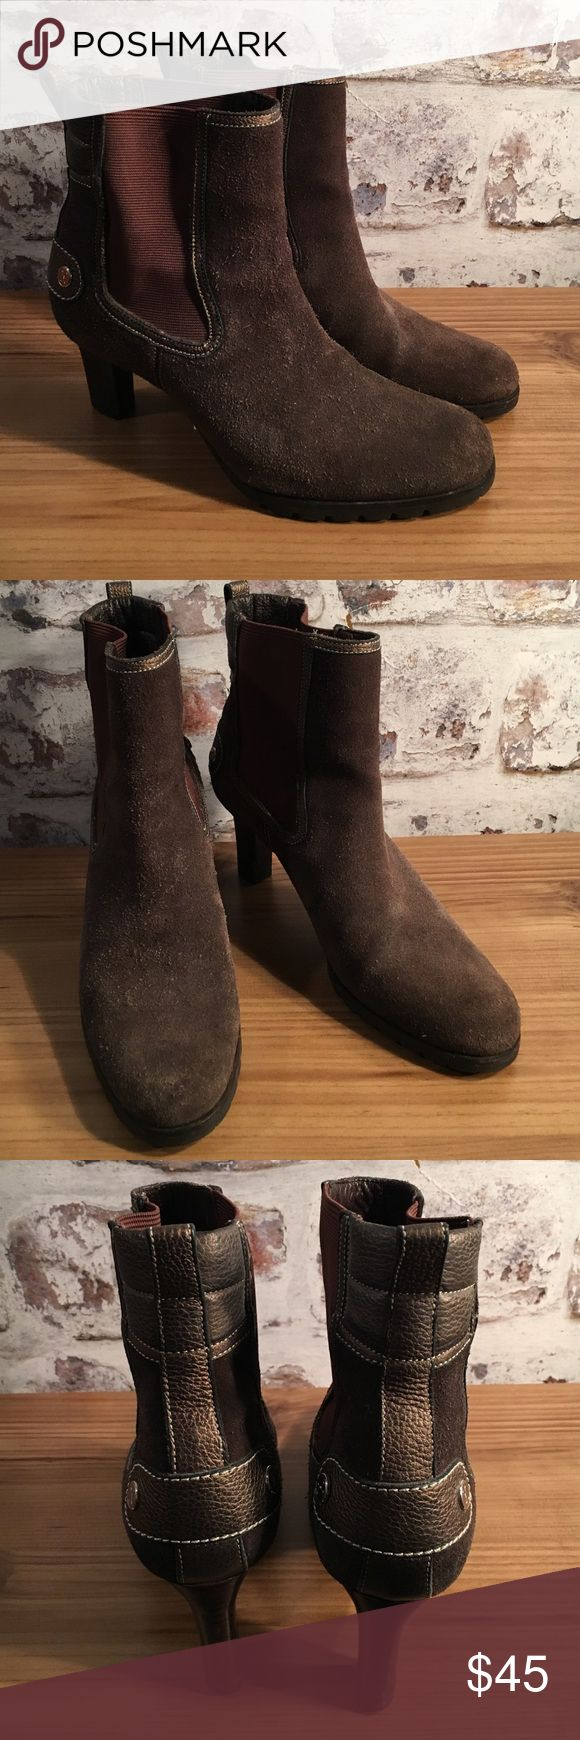 """Cole Haan suede short boots Cole Haan suede booties with nylon inserts. Heels 2.75"""". Beautiful! Cole Haan Shoes Heeled Boots"""